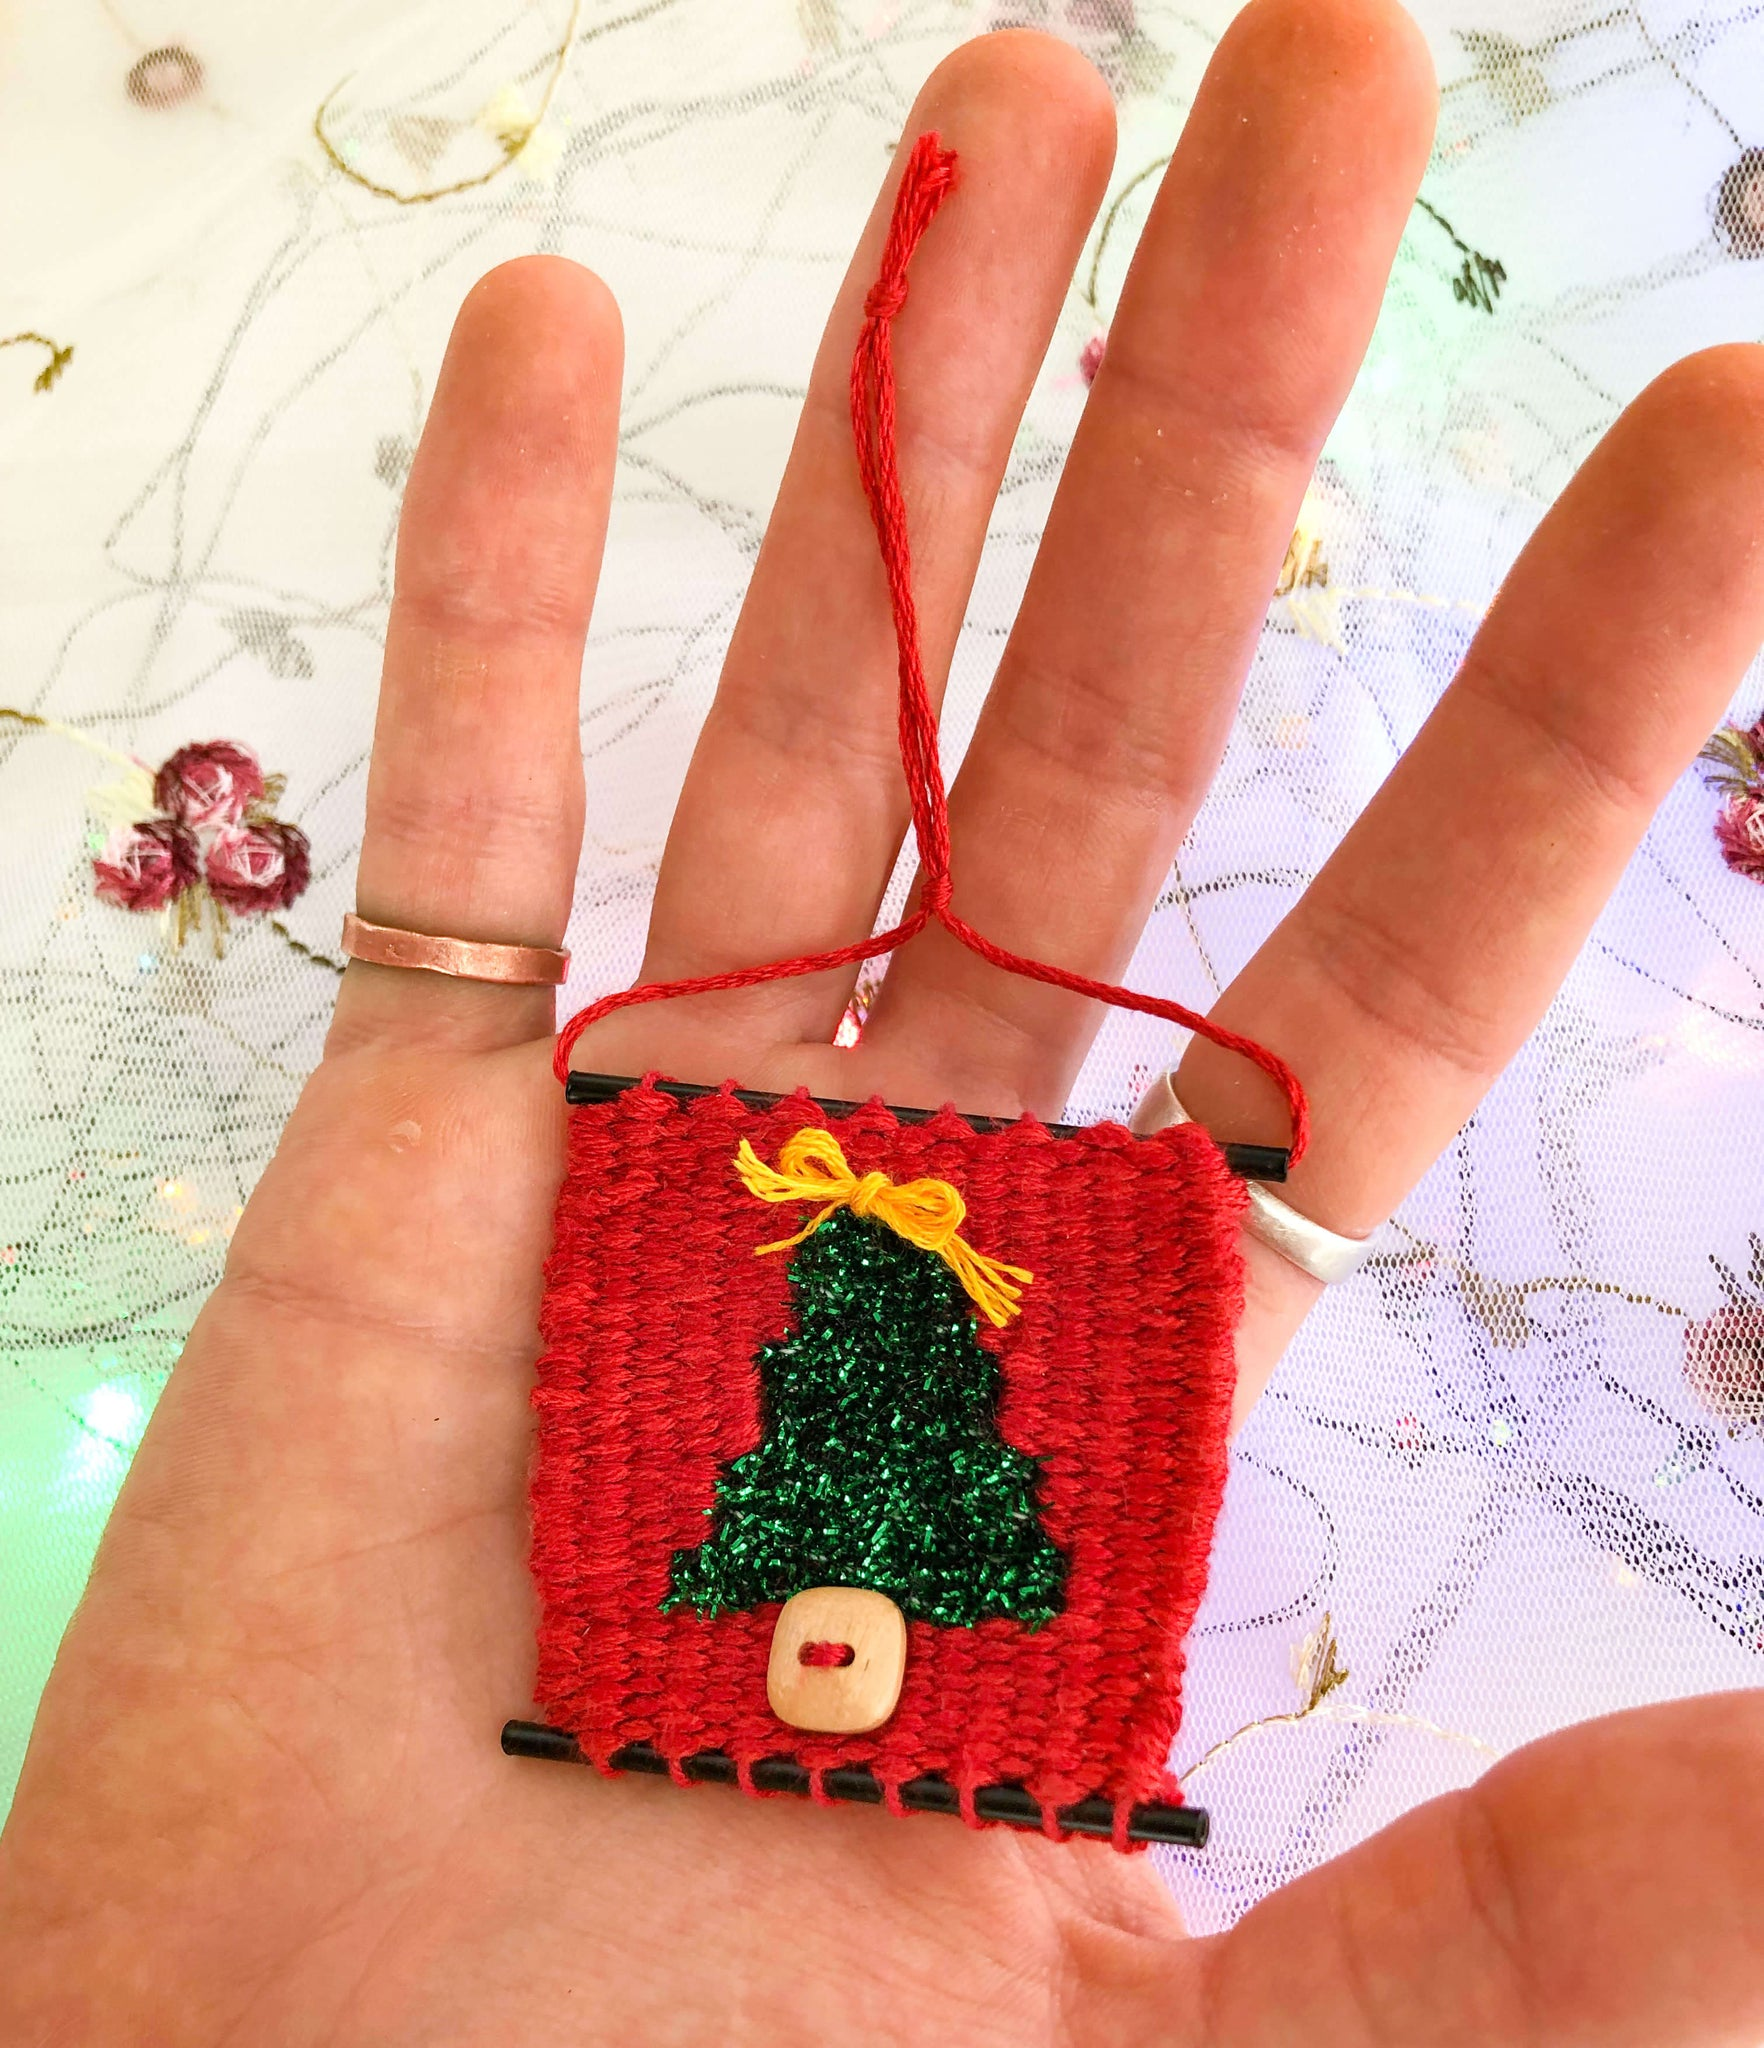 Handwoven Christmas Tree Ornament in hand